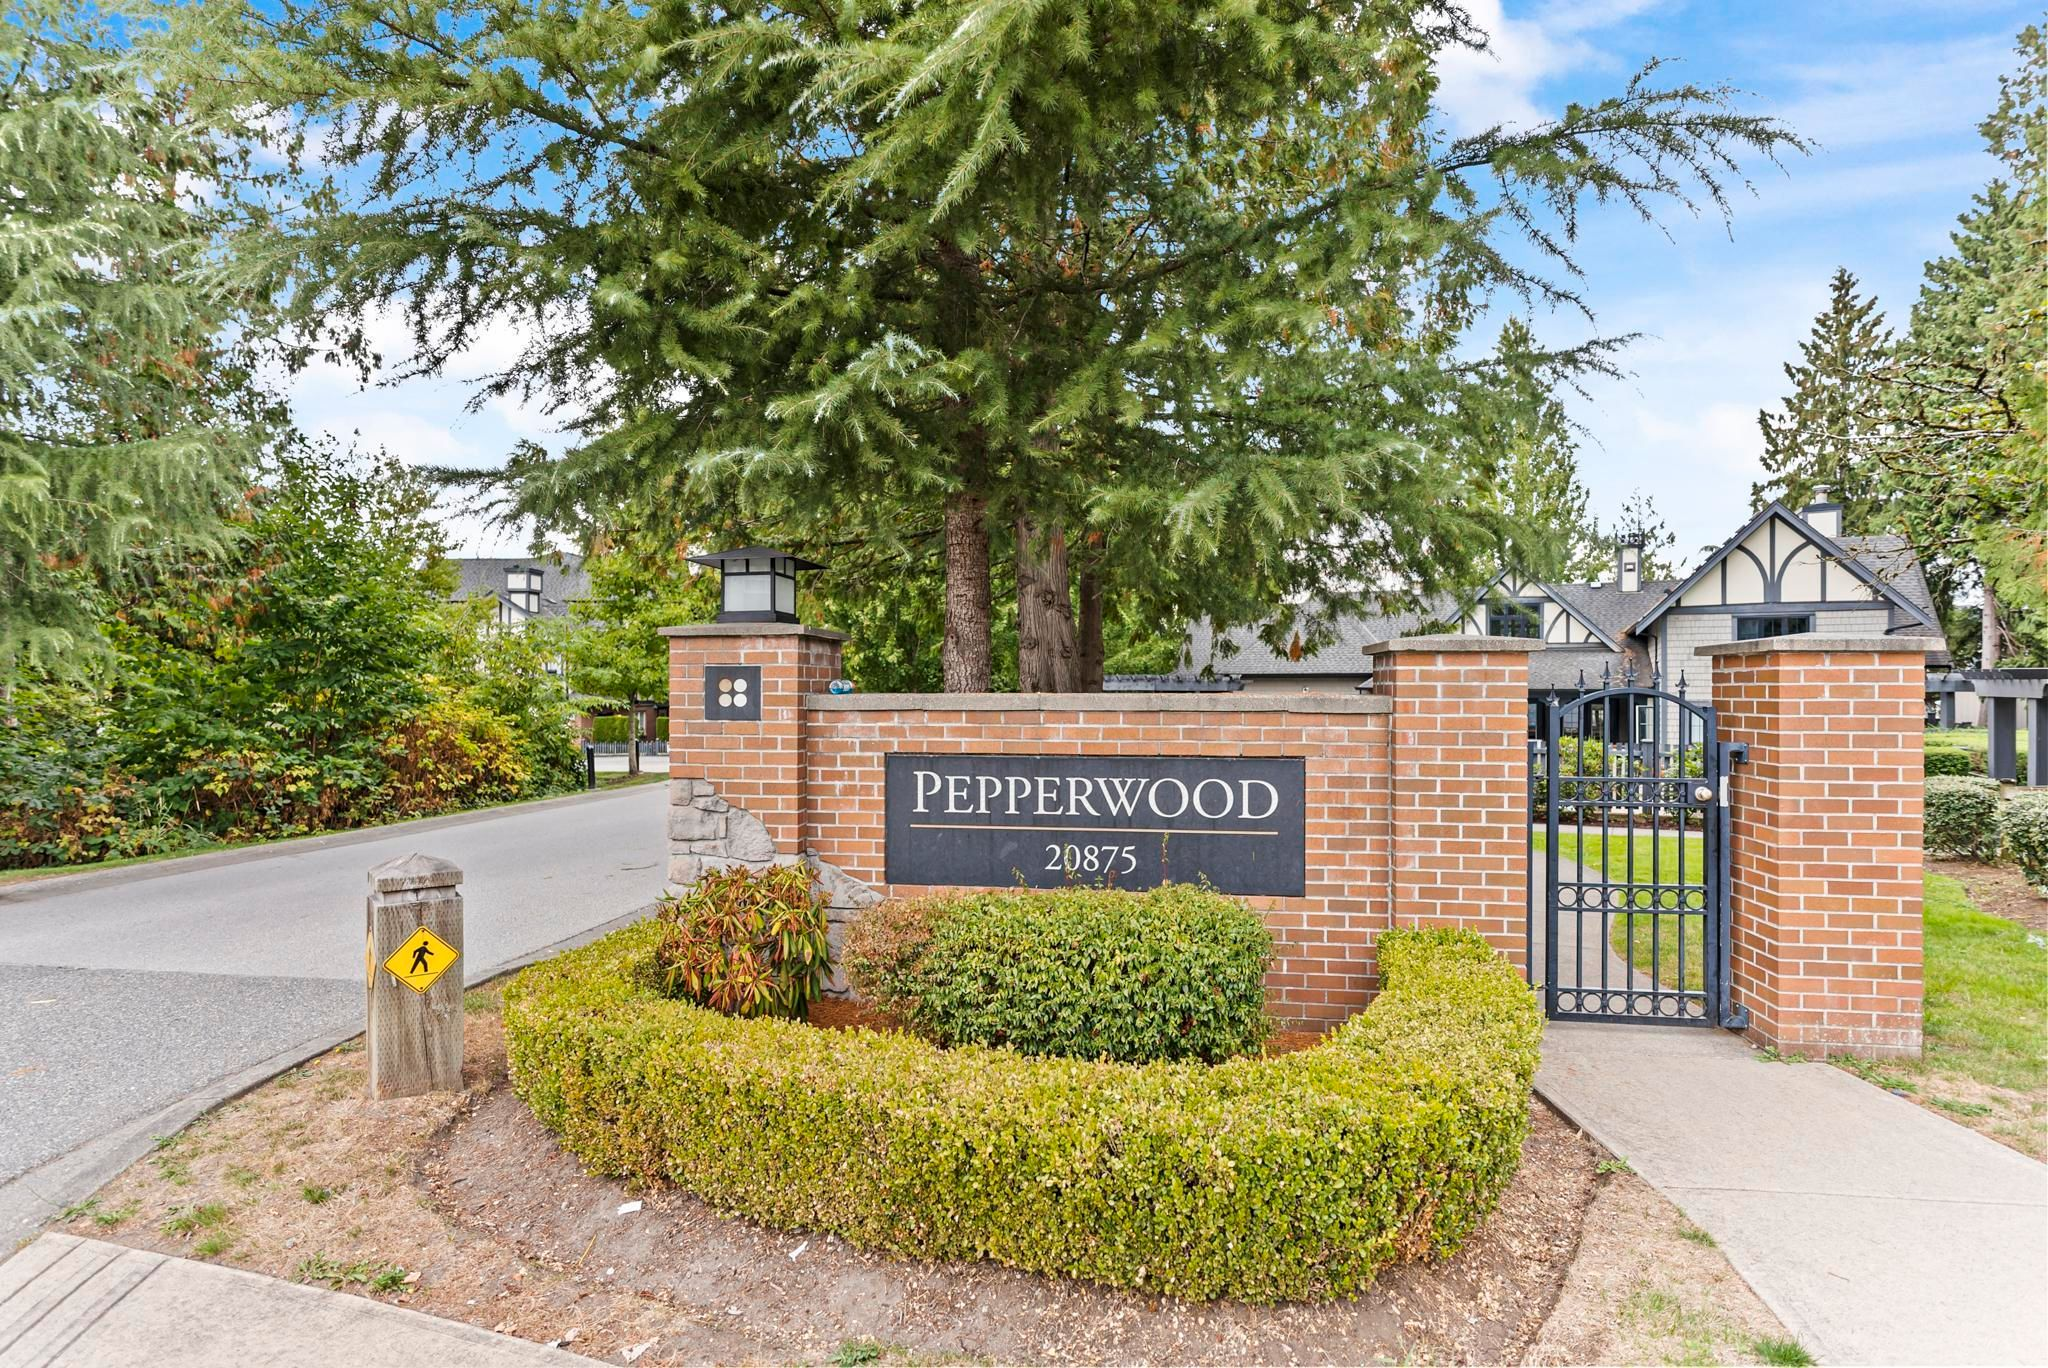 """Main Photo: 71 20875 80 Avenue in Langley: Willoughby Heights Townhouse for sale in """"Pepperwood"""" : MLS®# R2617536"""